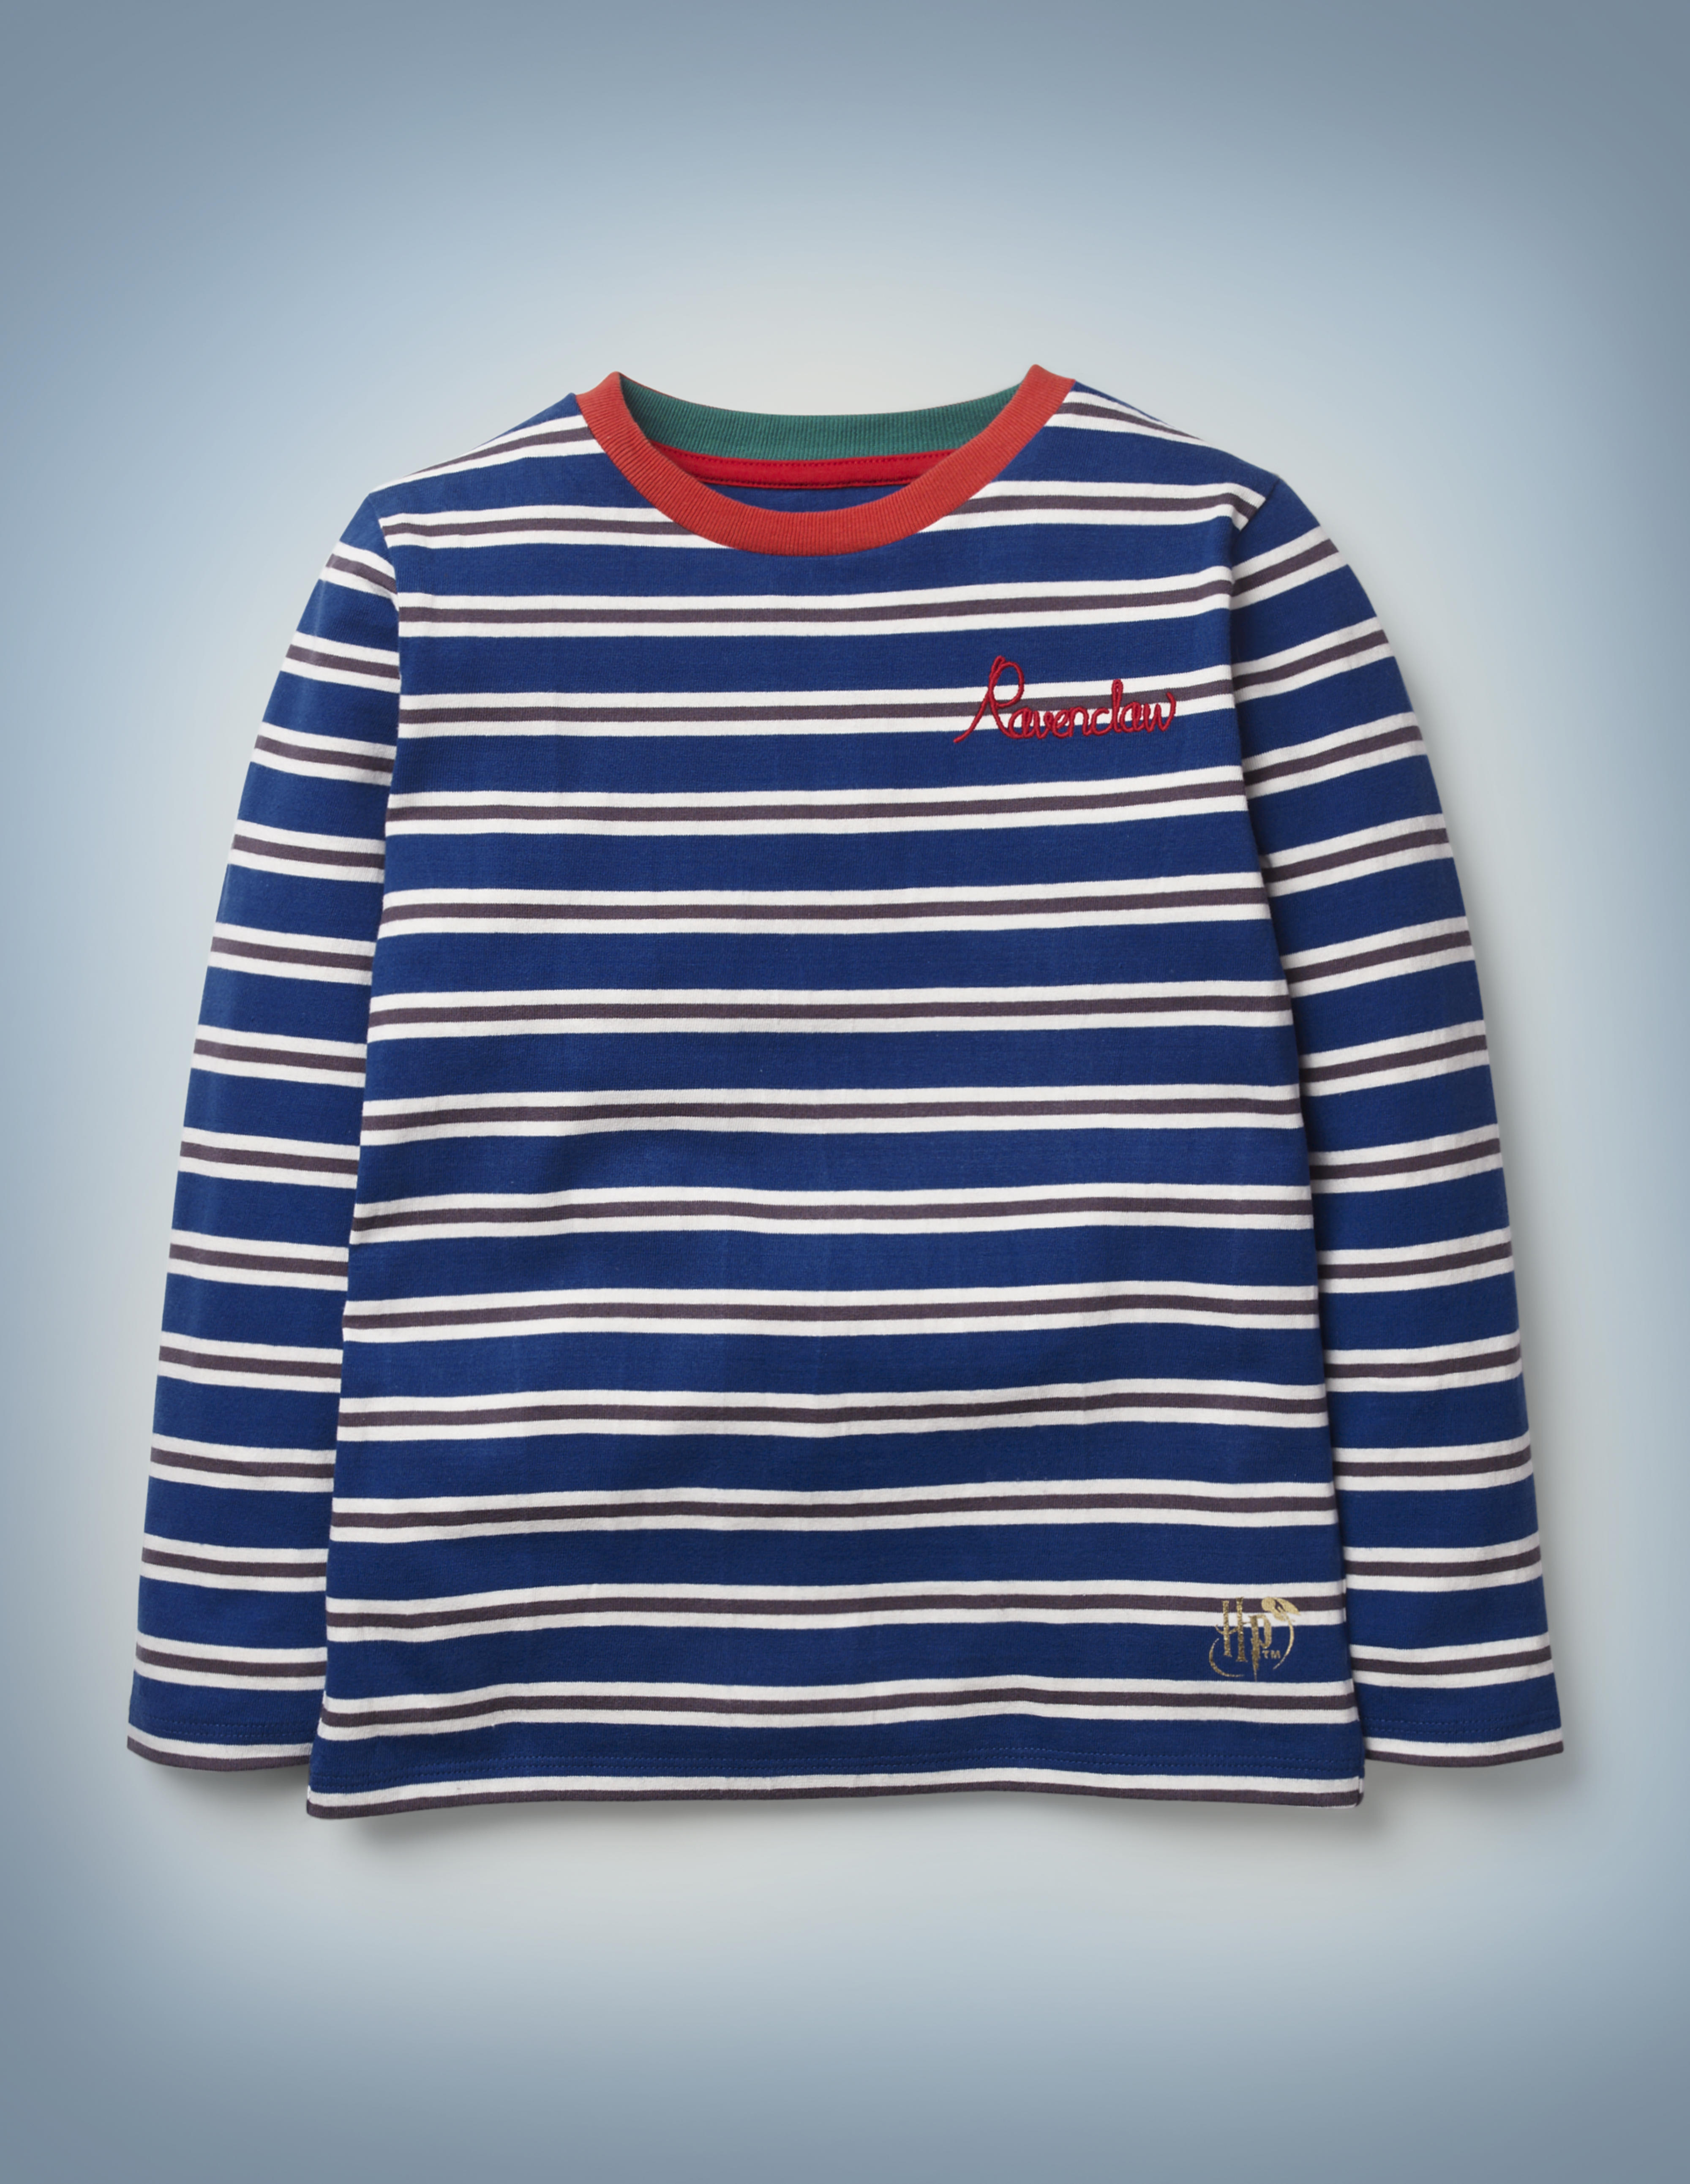 """The Mini Boden House Breton in blue features all-over blue and silver stripes, a red collar, and """"Ravenclaw"""" written in red script in the front pocket area. It retails between £20 and £22."""